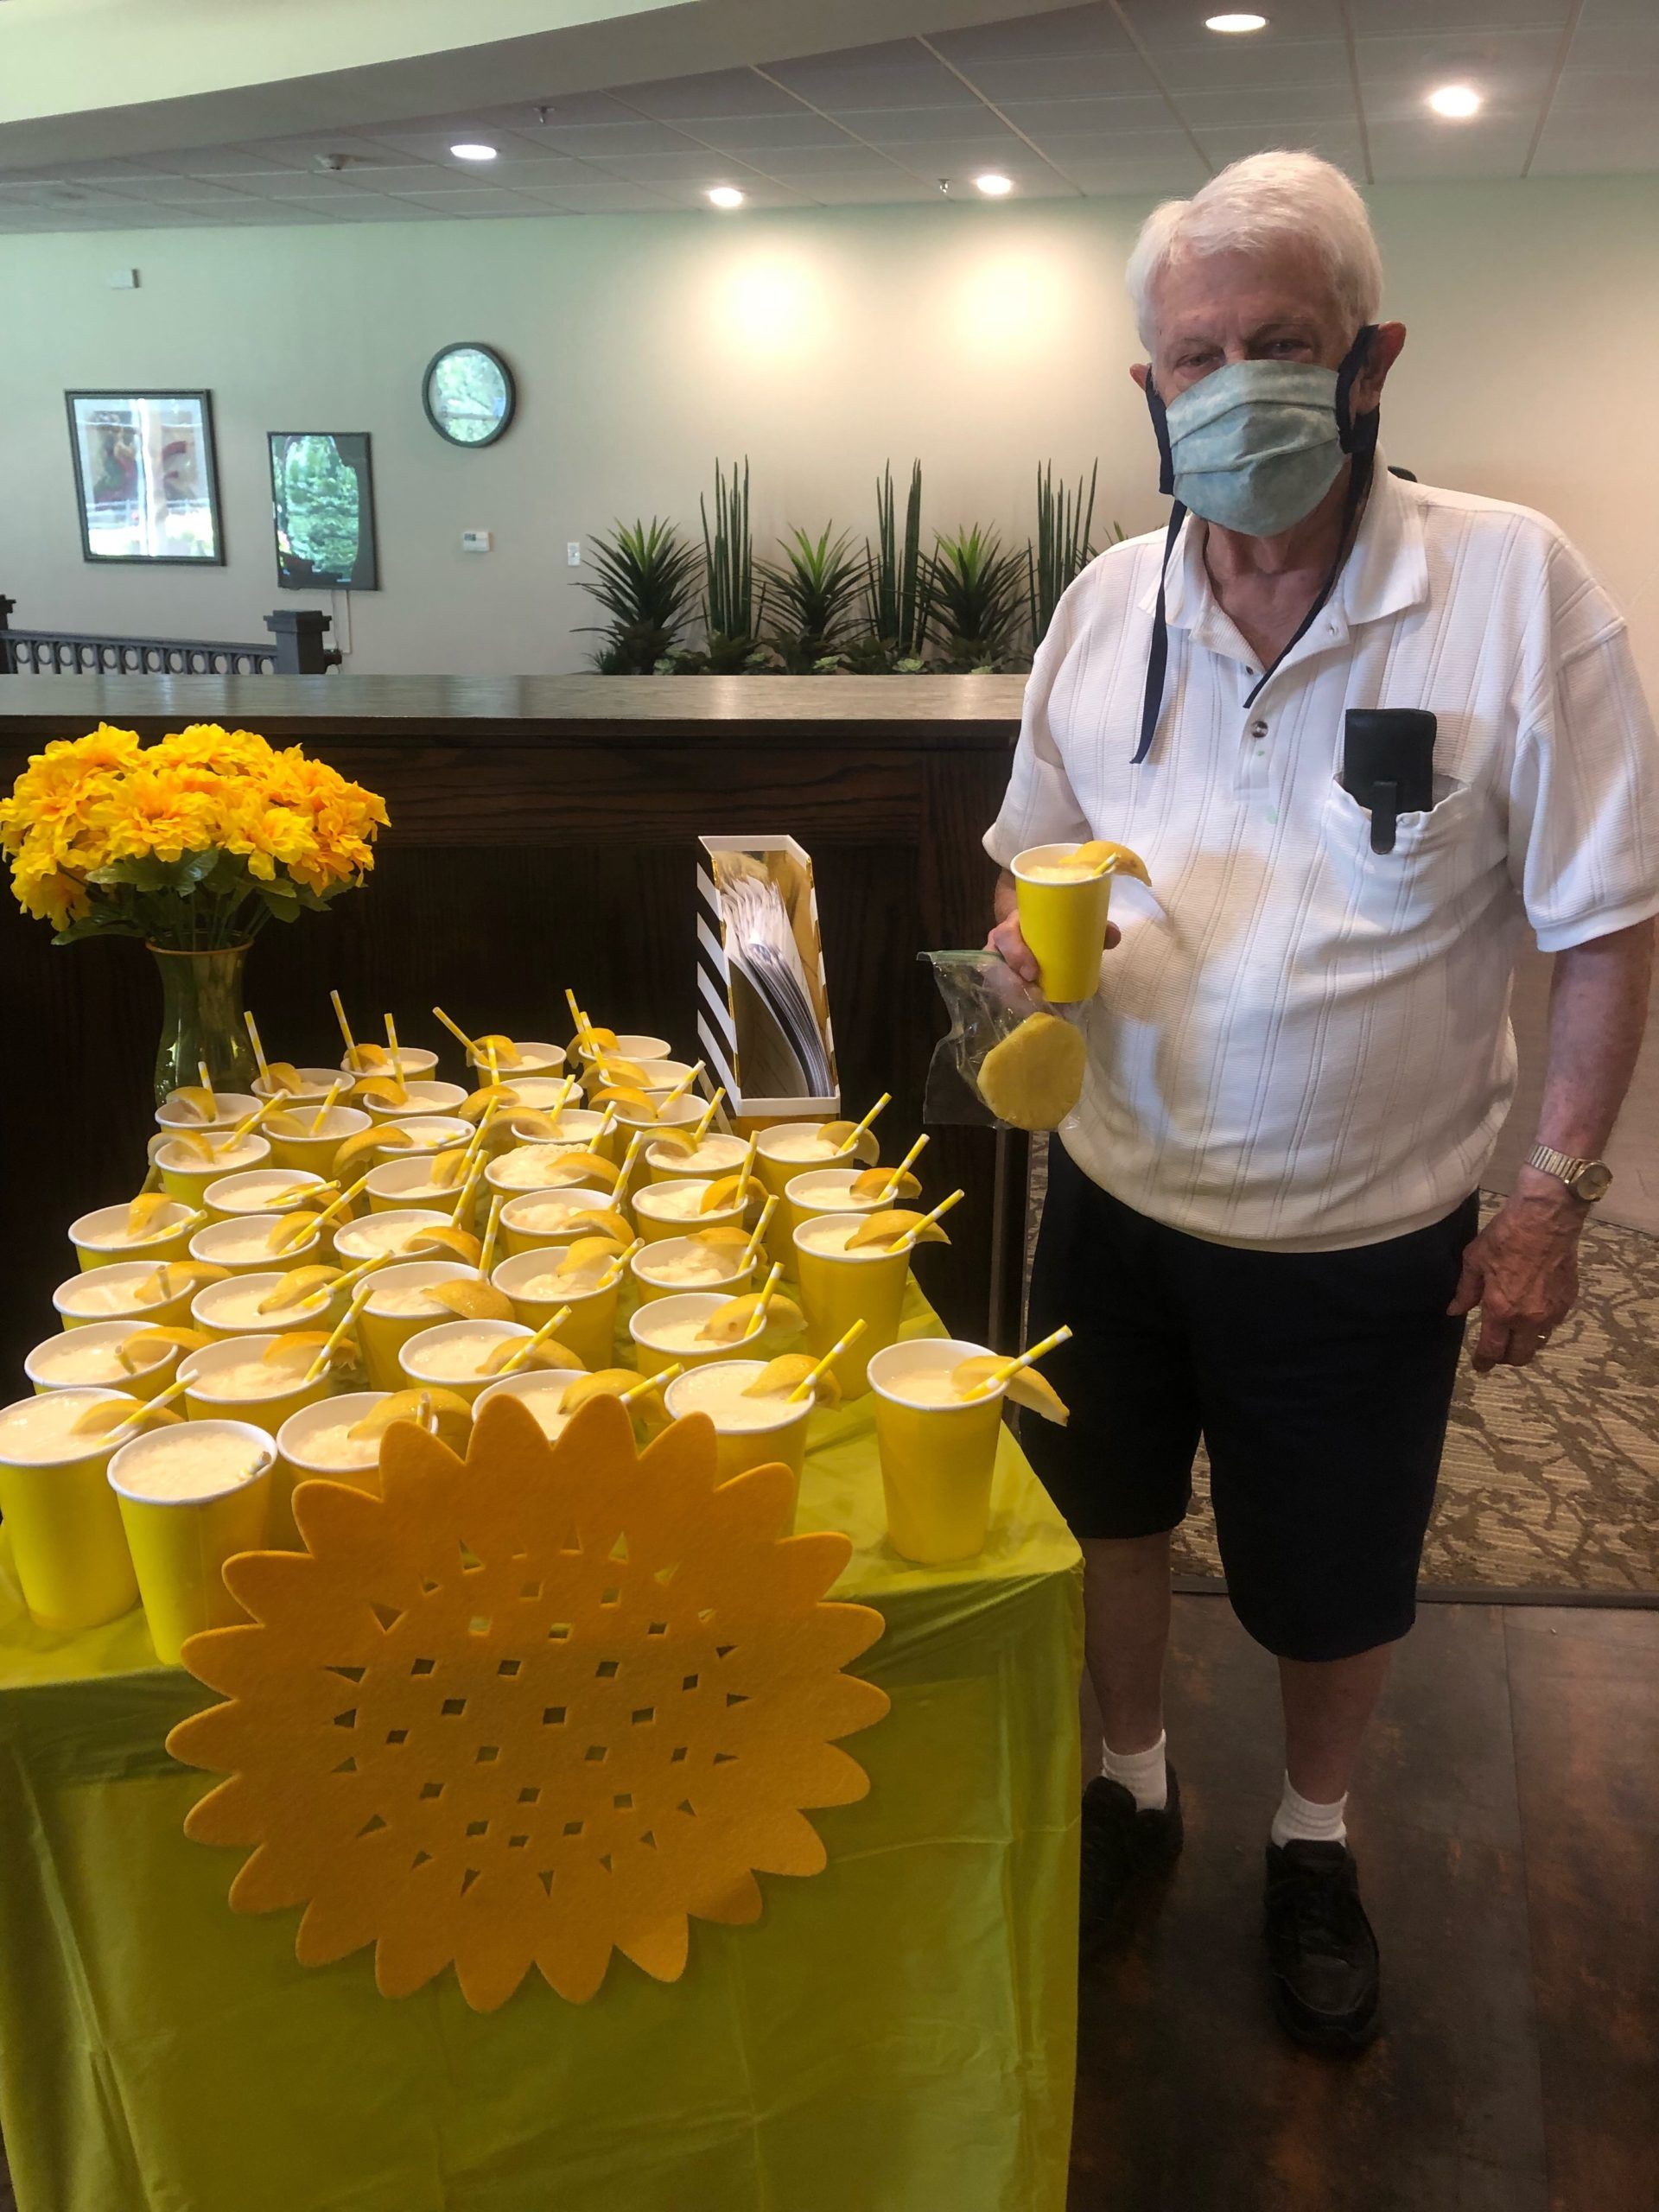 Lou is visited by a weekly surprise cart that had a Sunshine Theme! Residents were treated to Lemonade Frostys, Fresh Pineapple, Lemon Cake, Snickerdoodle Cookies, and Fun Sunshine Songs!